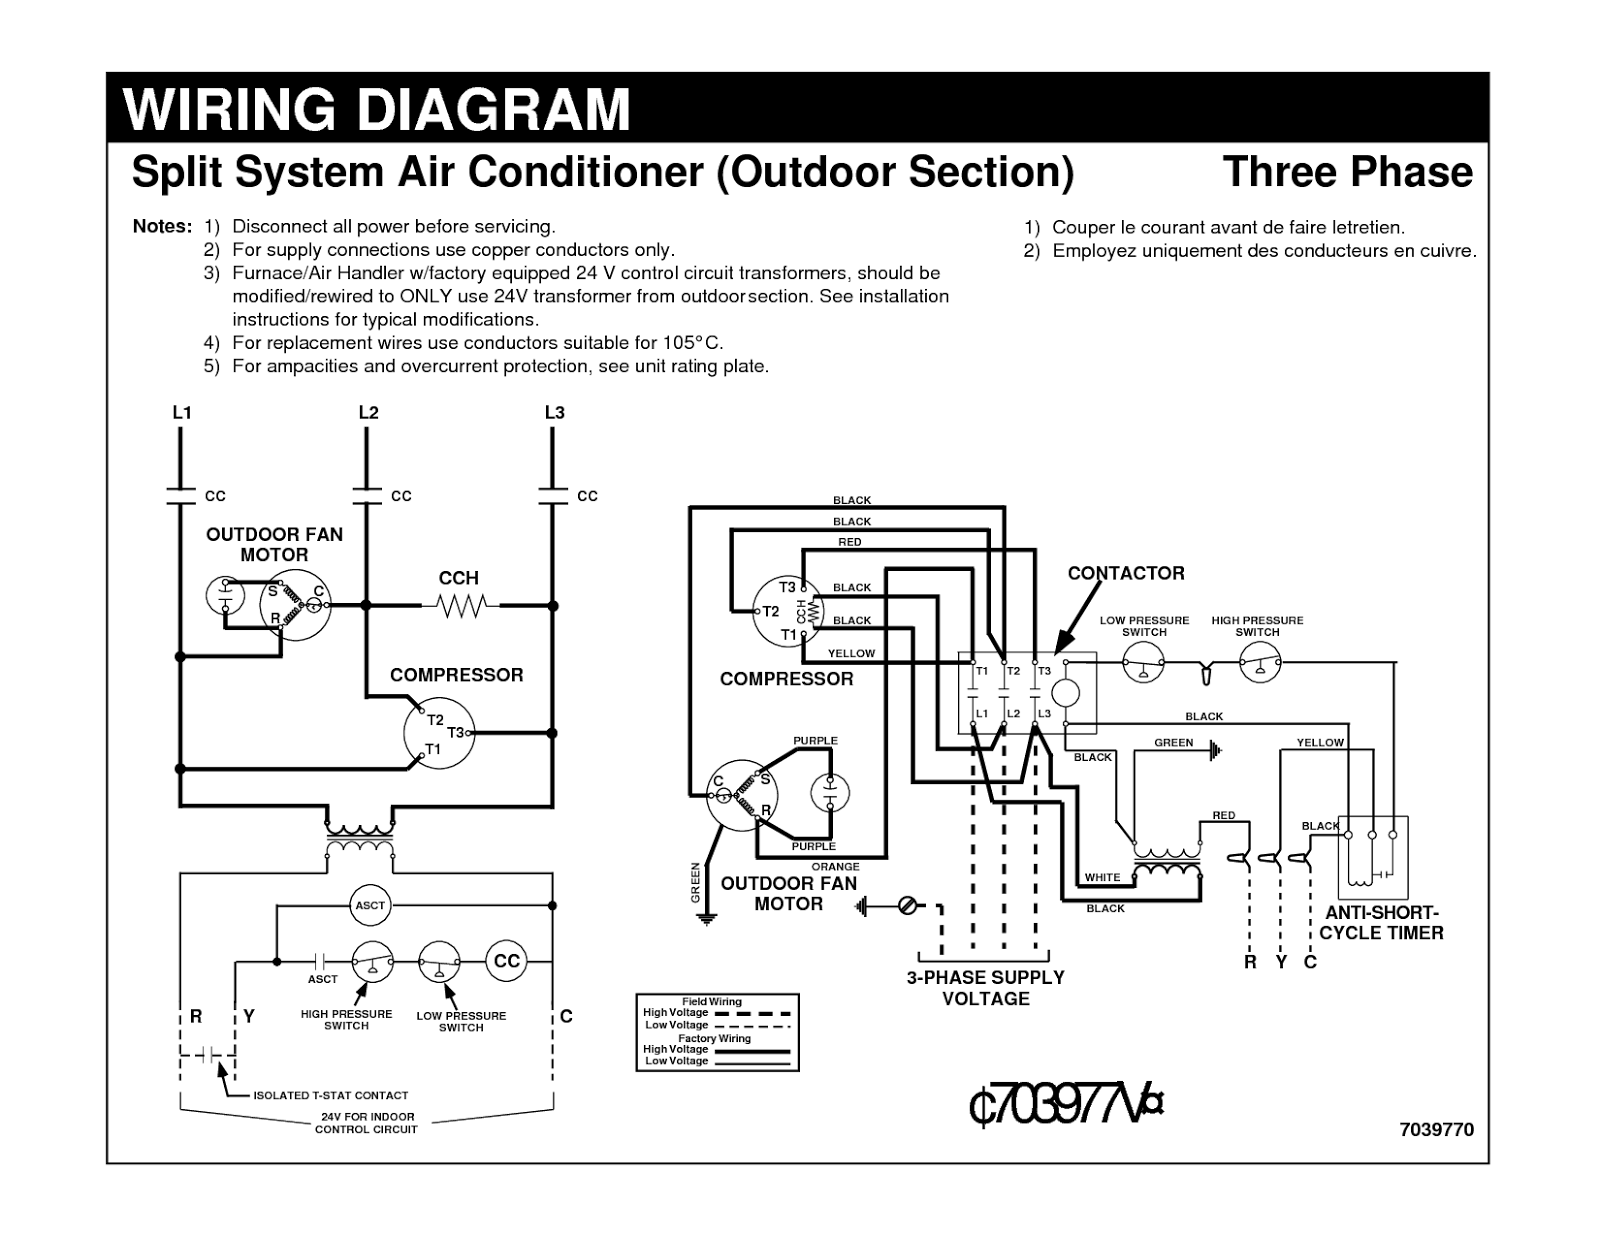 electricity wiring diagrams reading a relay diagram electrical for air conditioning systems